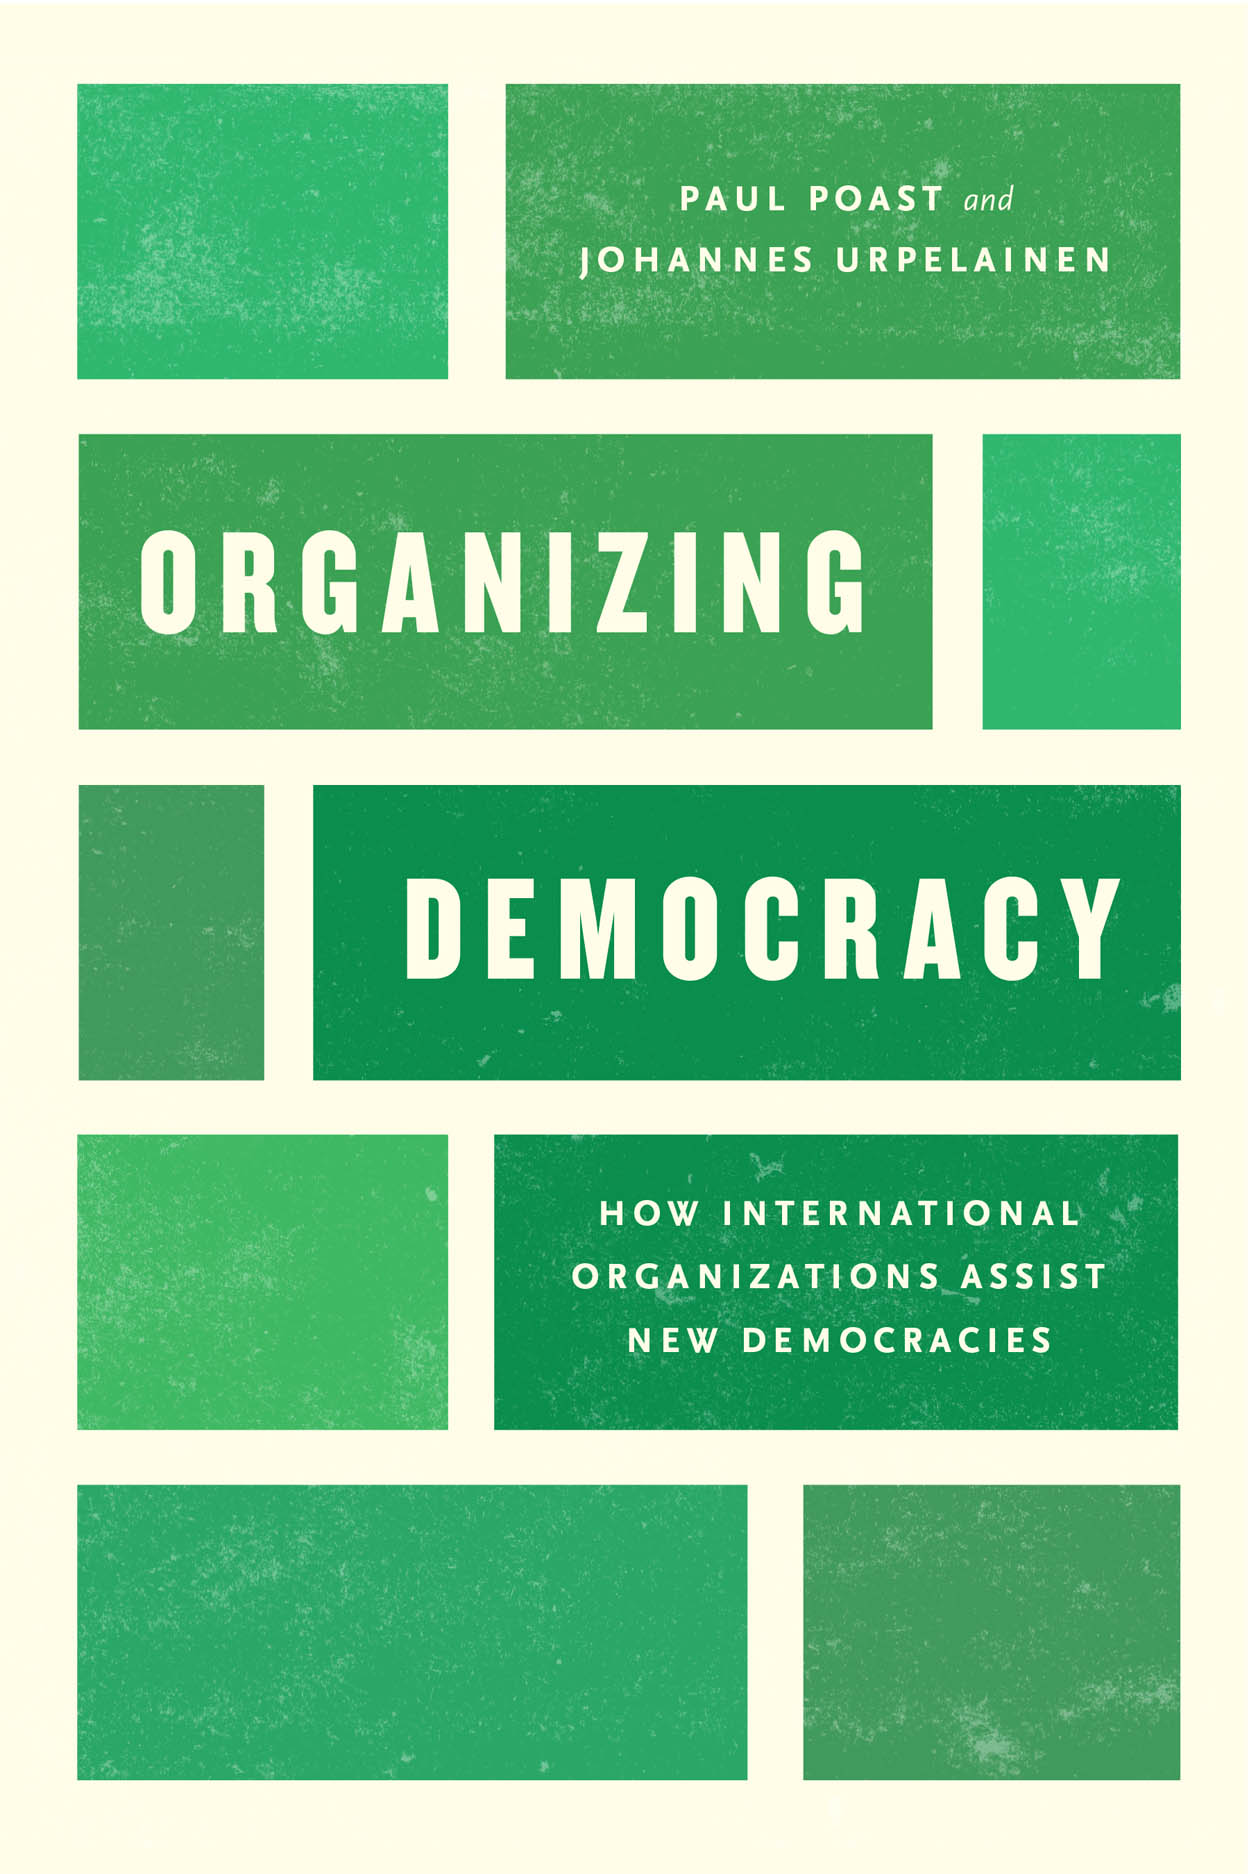 Organizing Democracy: How International Organizations Assist New Democracies